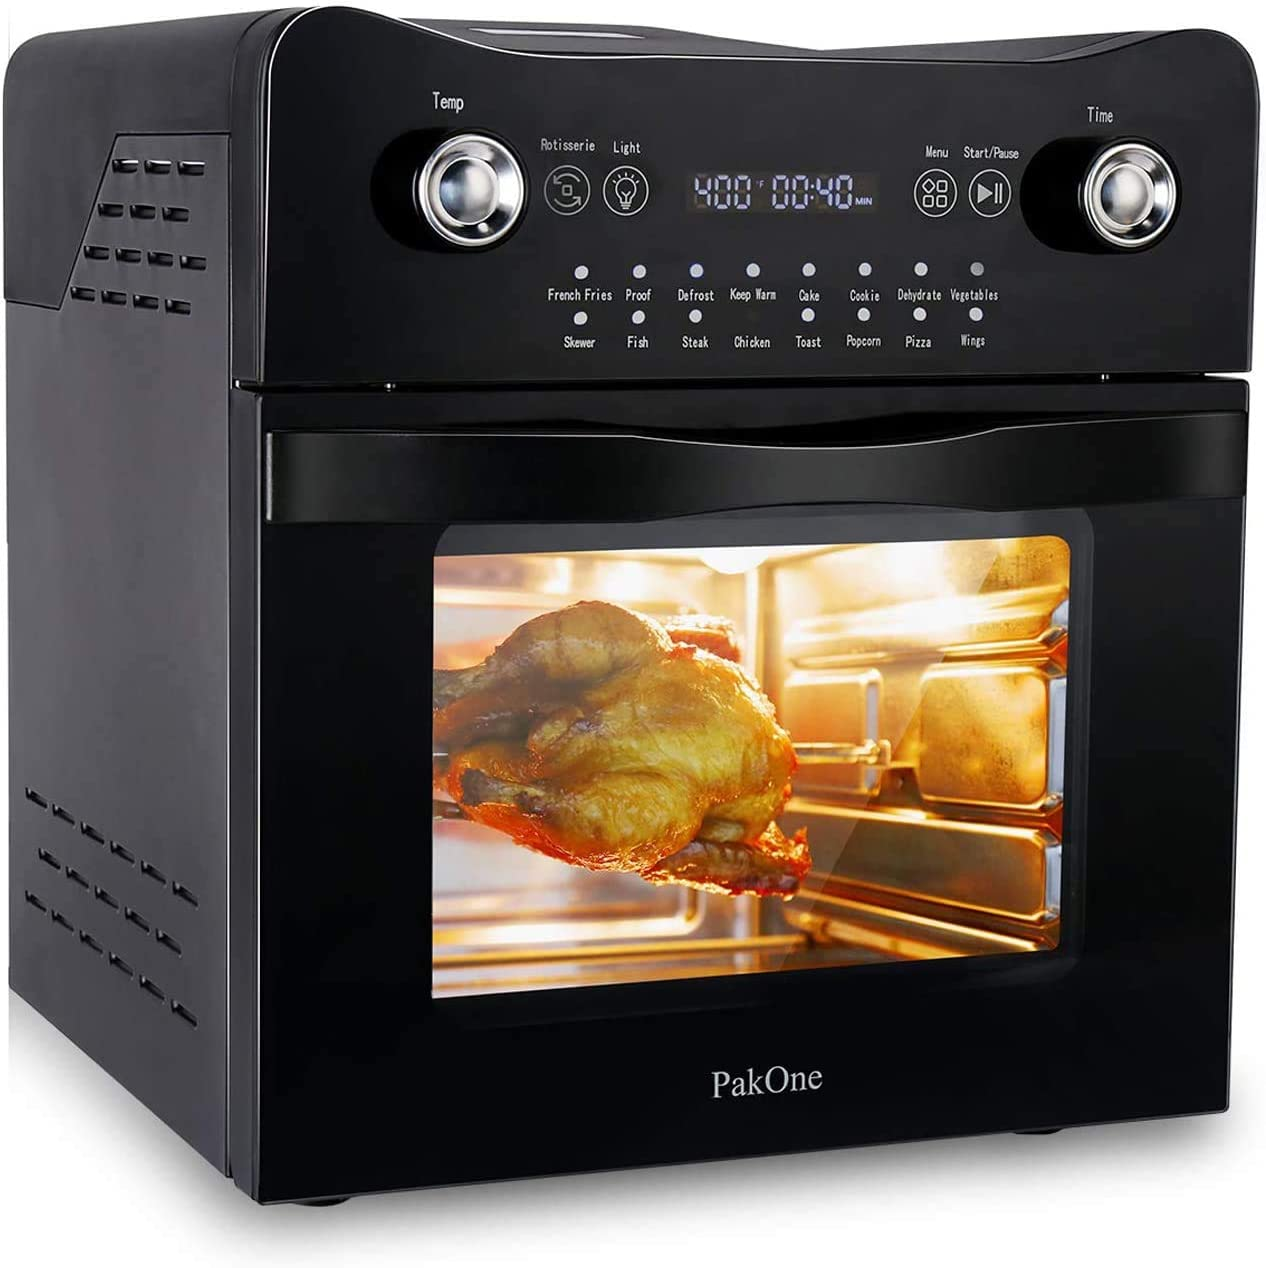 PakOne Digital Air Fryer, 1800W Convection Oven with Rotisserie and Dehydrator, 16-in-1 Air Fryer Toaster Oven Countertop Oven, LED Touch Digital Screen Oilless Cooker with Full Set Dishwasher Safe